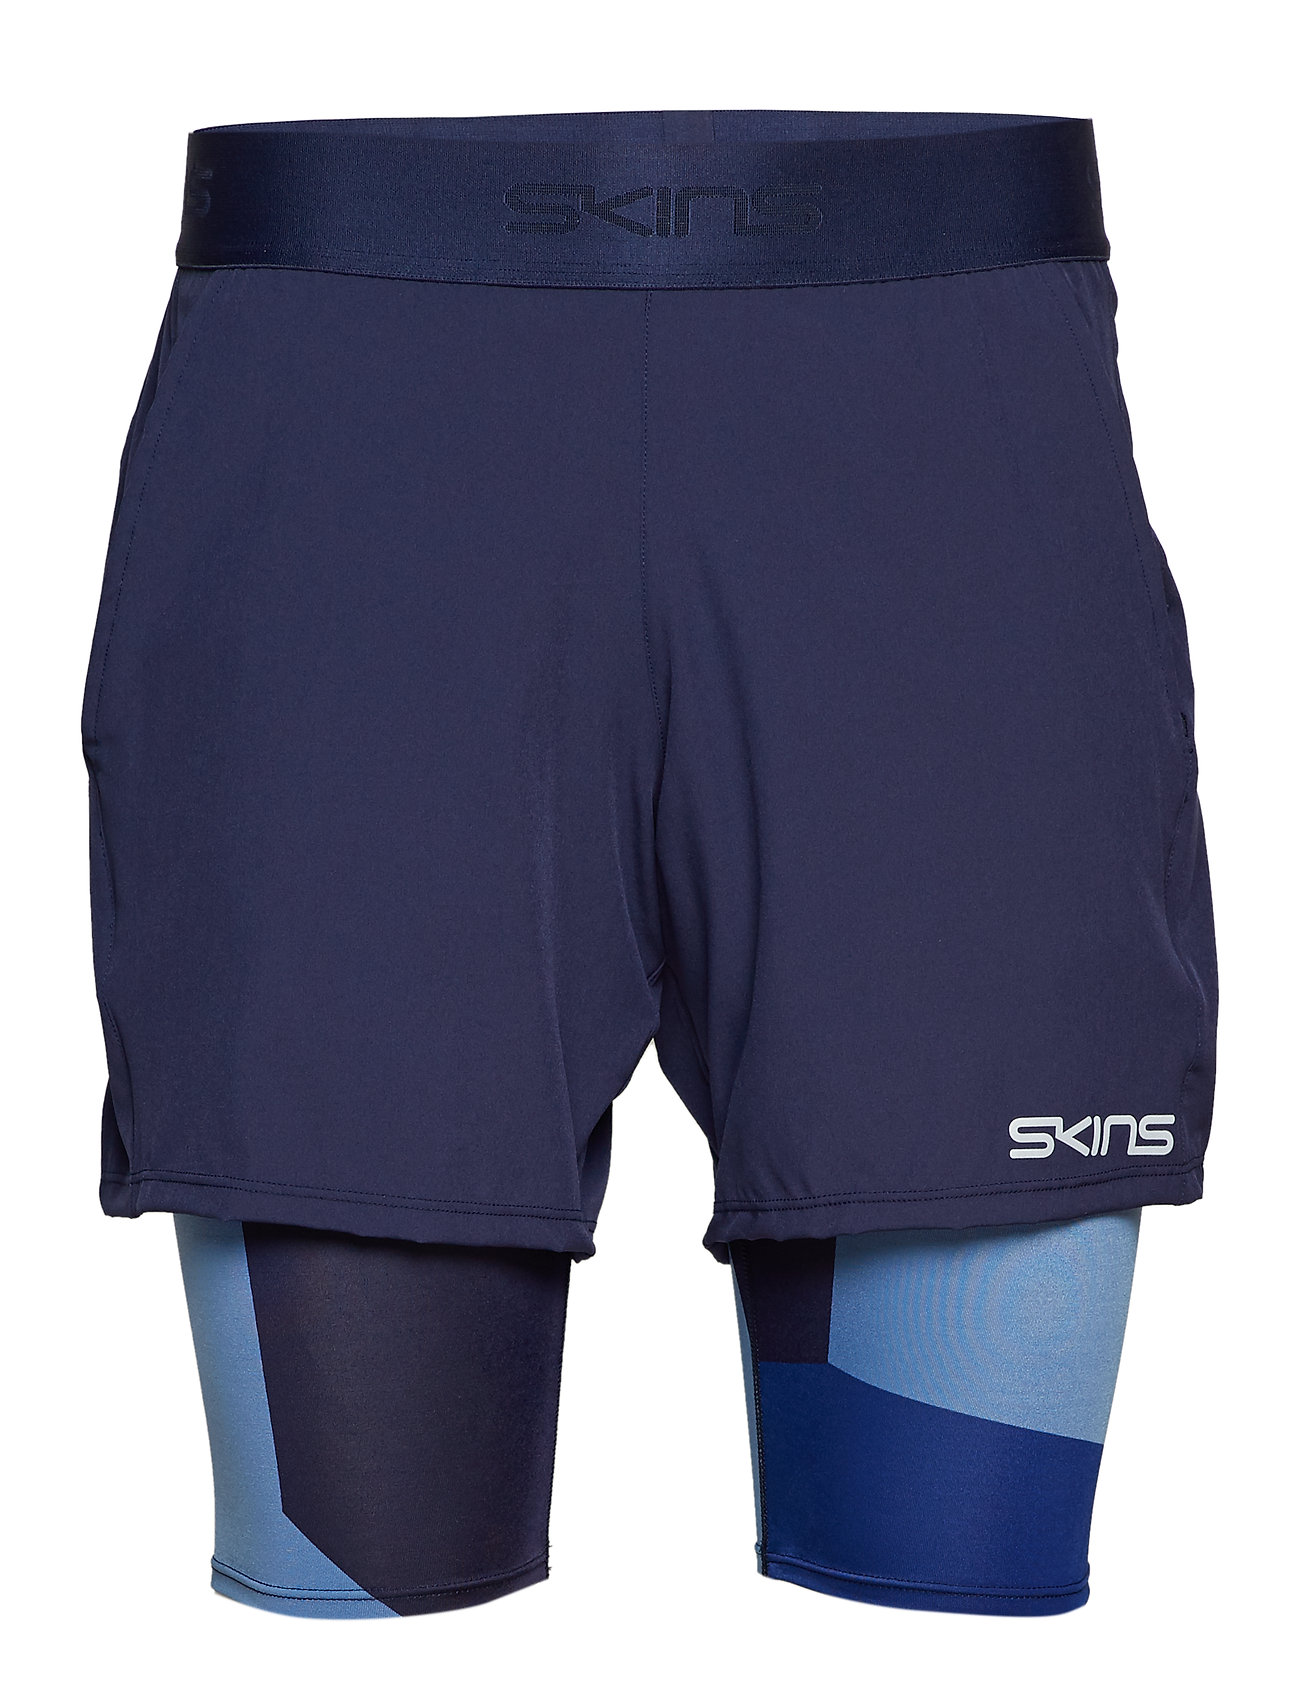 Skins DNAmic Primary Mens Superpose 1 2 Tight Shorts